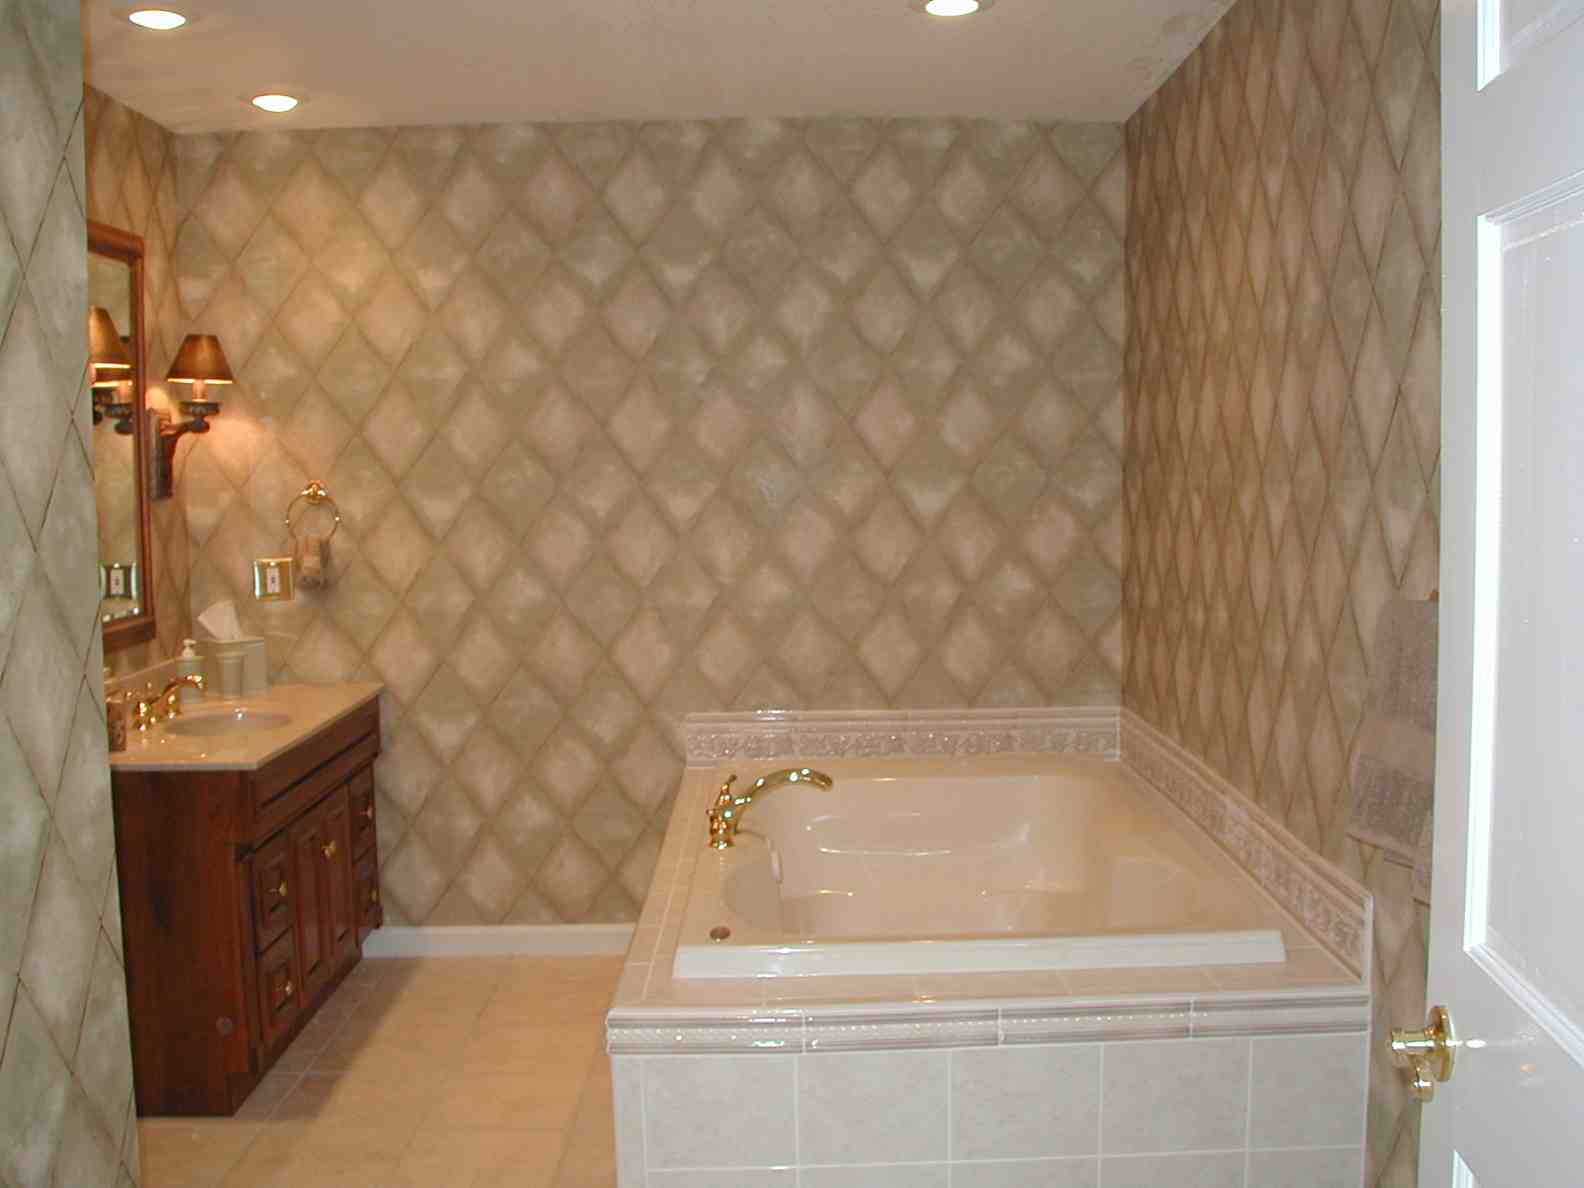 glass mosaic tile bathroom design ideas 24 amazing pictures of glass tiles for bathroom gallery. Interior Design Ideas. Home Design Ideas